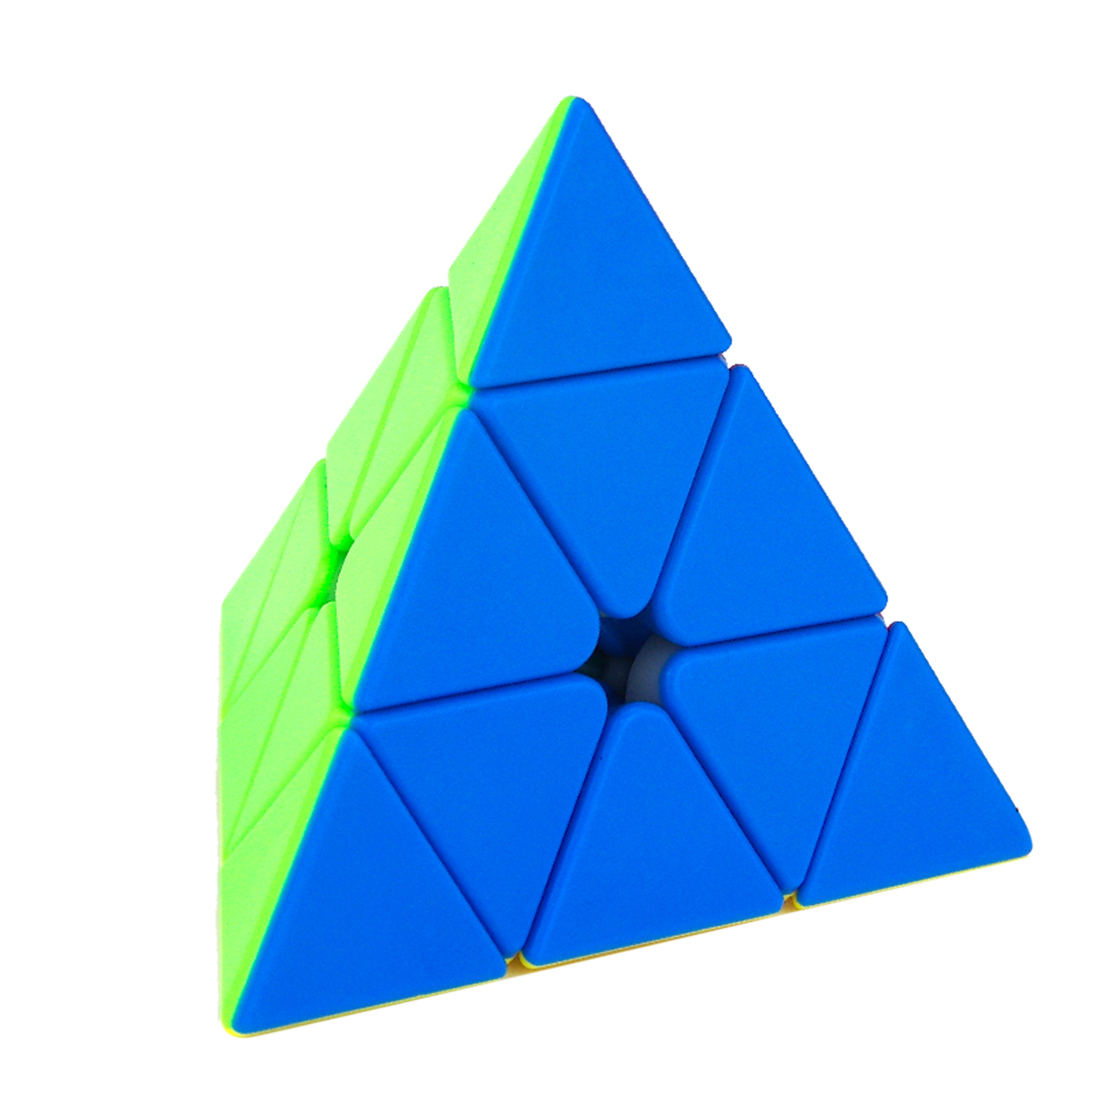 MoYu Pyraminx Magic Cube Puzzle Toys for Challenging yj yongjun moyu yuhu megaminx magic cube speed puzzle cubes kids toys educational toy